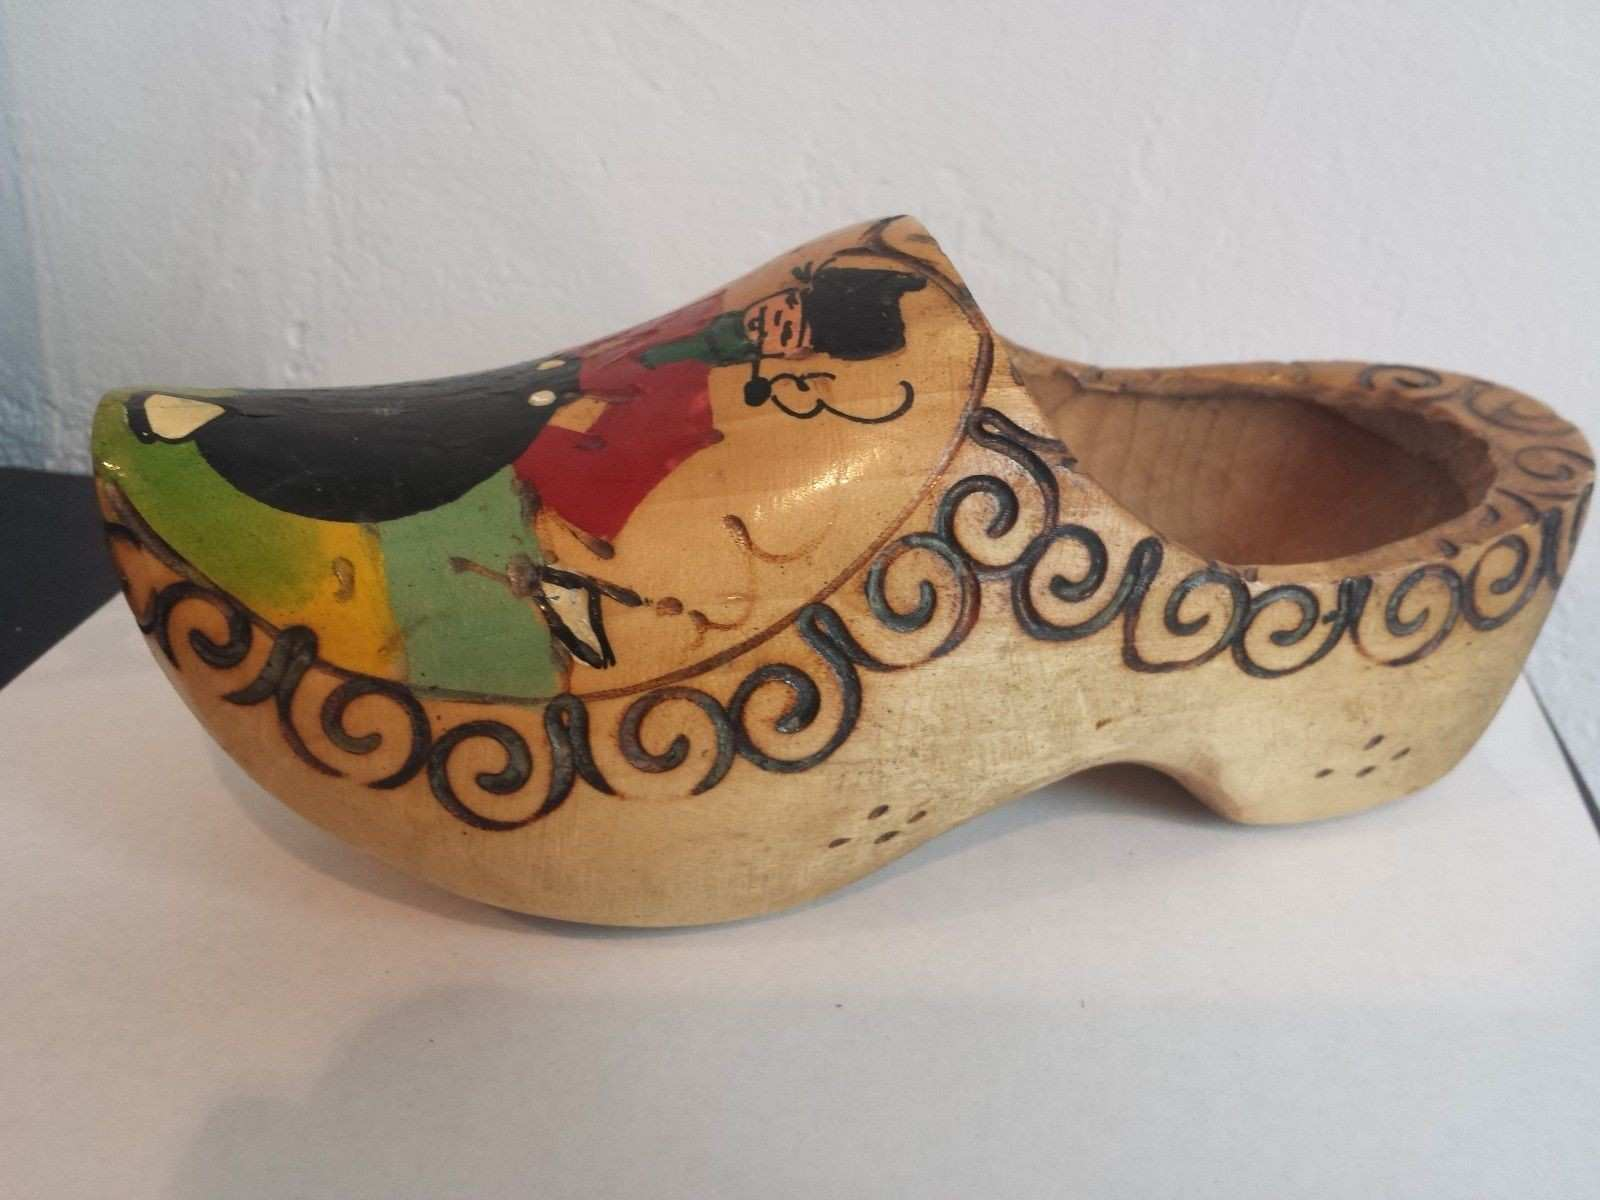 VINTAGE Wooden Dutch Clog Made in Holland WALL DECOR picclick